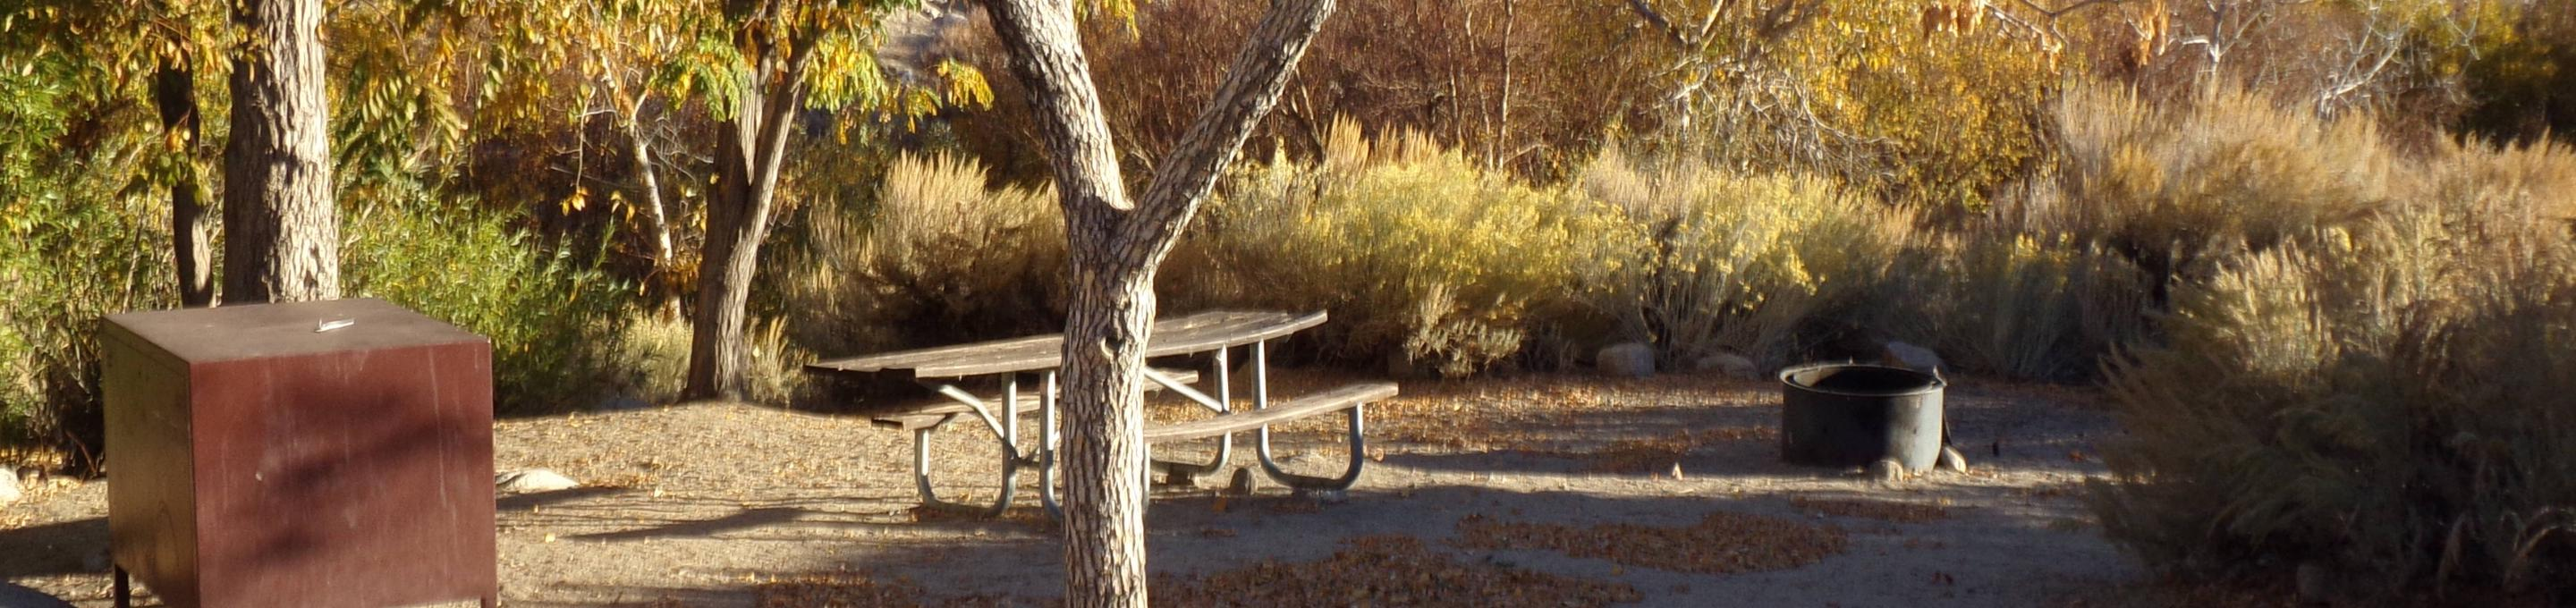 Lone Pine Campground site #22 featuring picnic area, food storage, and fire pit.